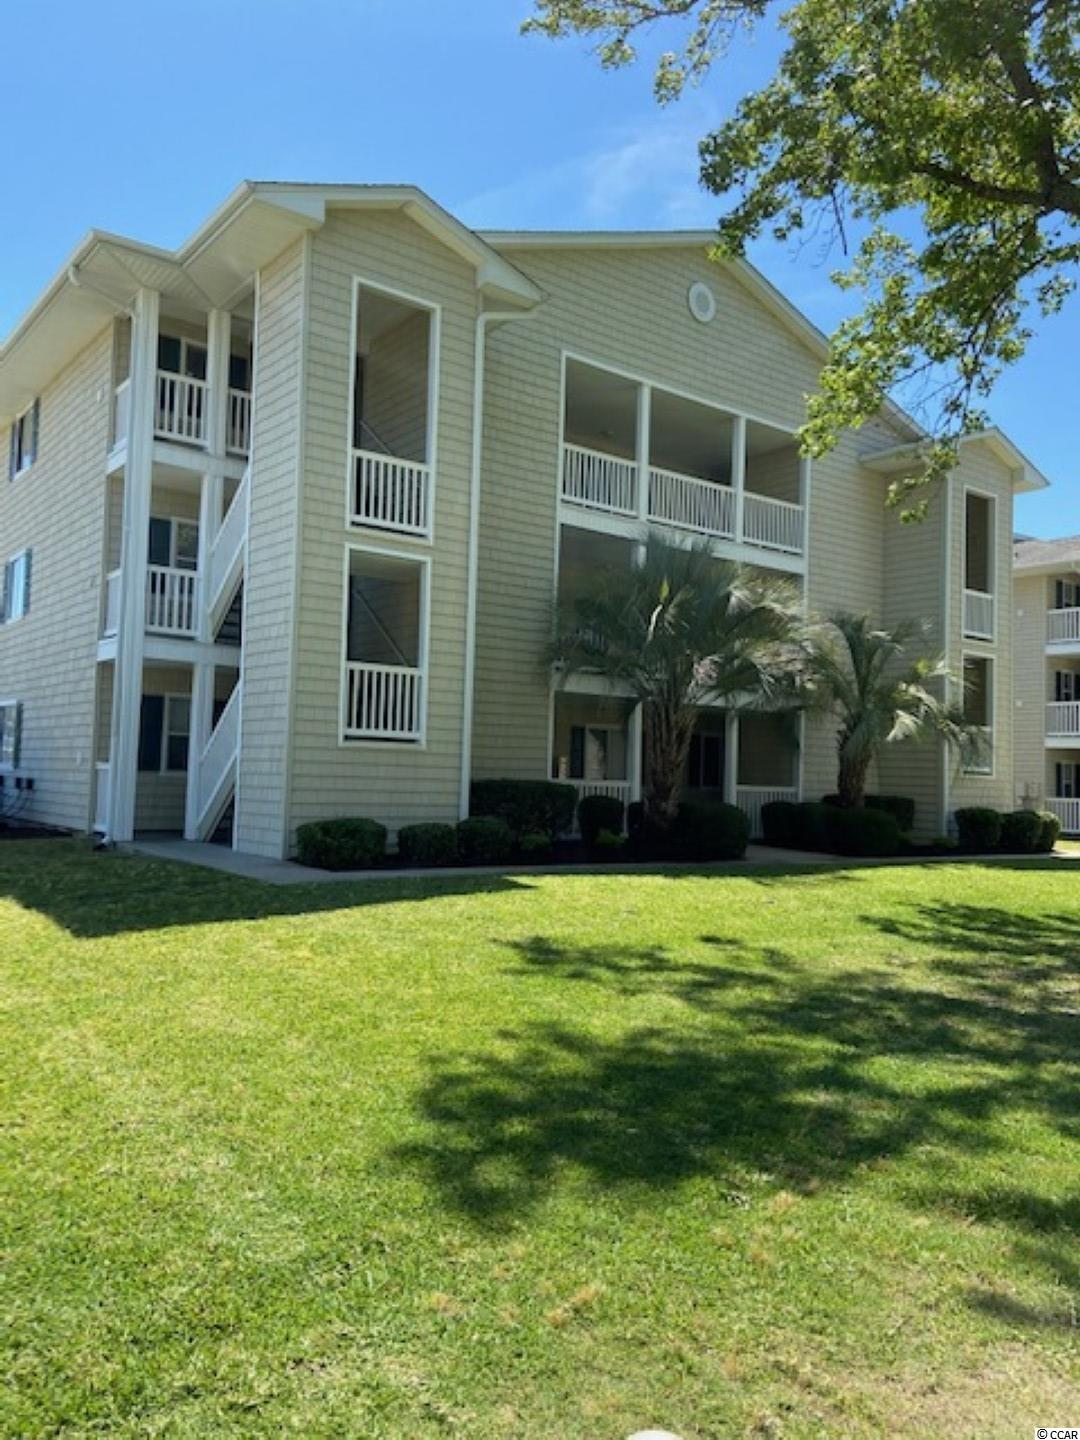 Great Location in North Myrtle Beach.  Nice condo in a Waterway community, one mile from the beachfront, and walking distance to restaurants & social activities. There are five community piers available for boat watching, fishing, or just relaxing and watching the sunset.  There are two pools available and onsite grills.  Robert Edge parkway is right around the corner for easy access to Hwy 31 bypass.  The North Myrtle Beach Sports complex is less than three miles away.